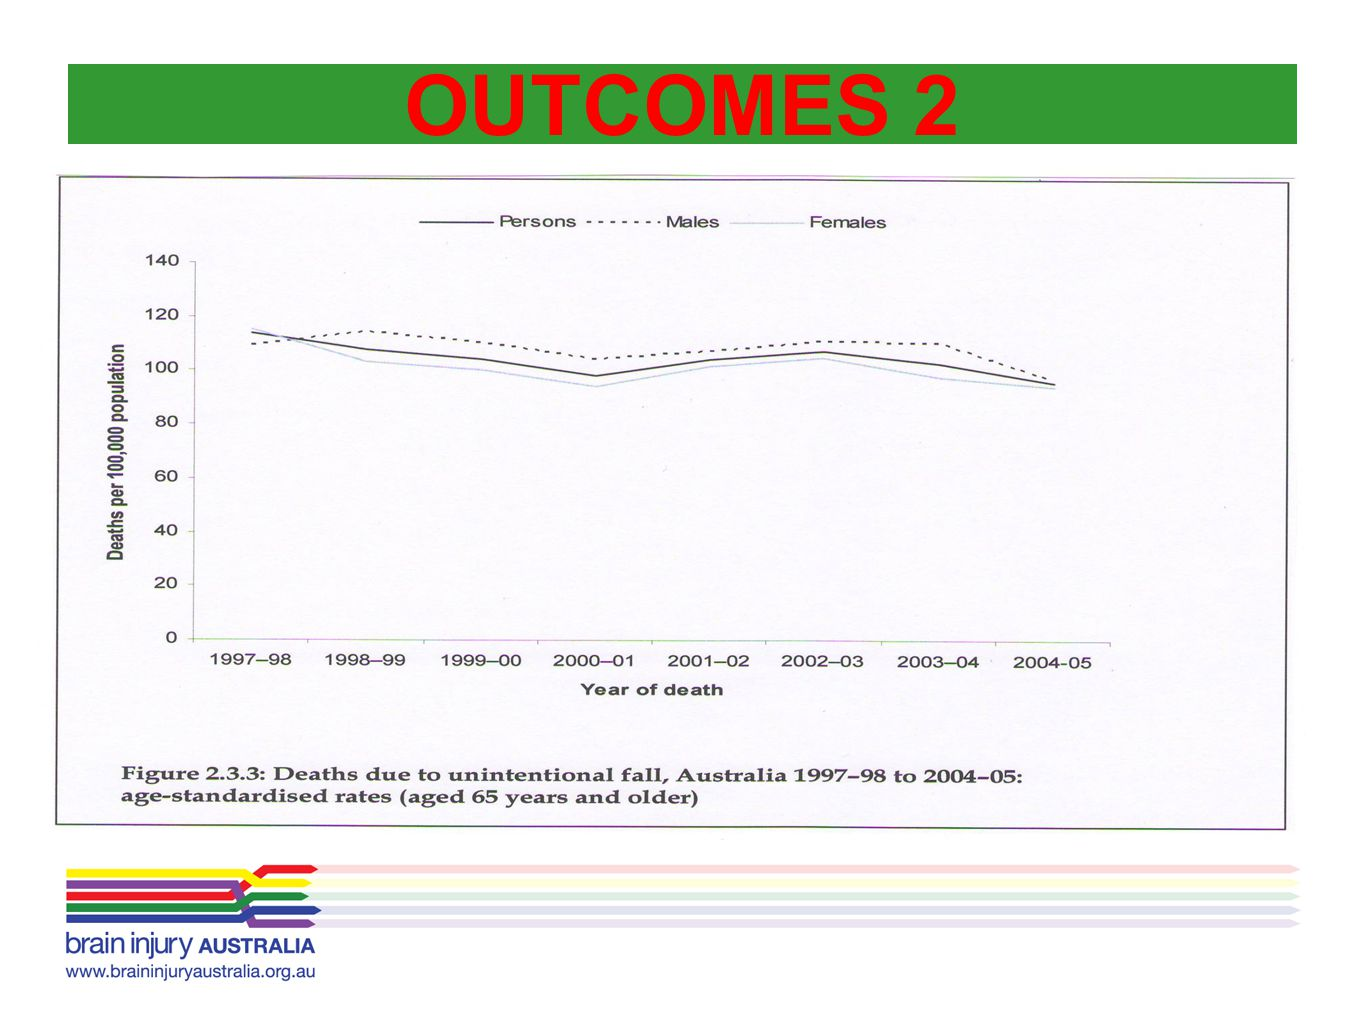 OUTCOMES 2 …death rates for persons aged 65 years and over fell by 13% from 1997–98 to 2004–05.